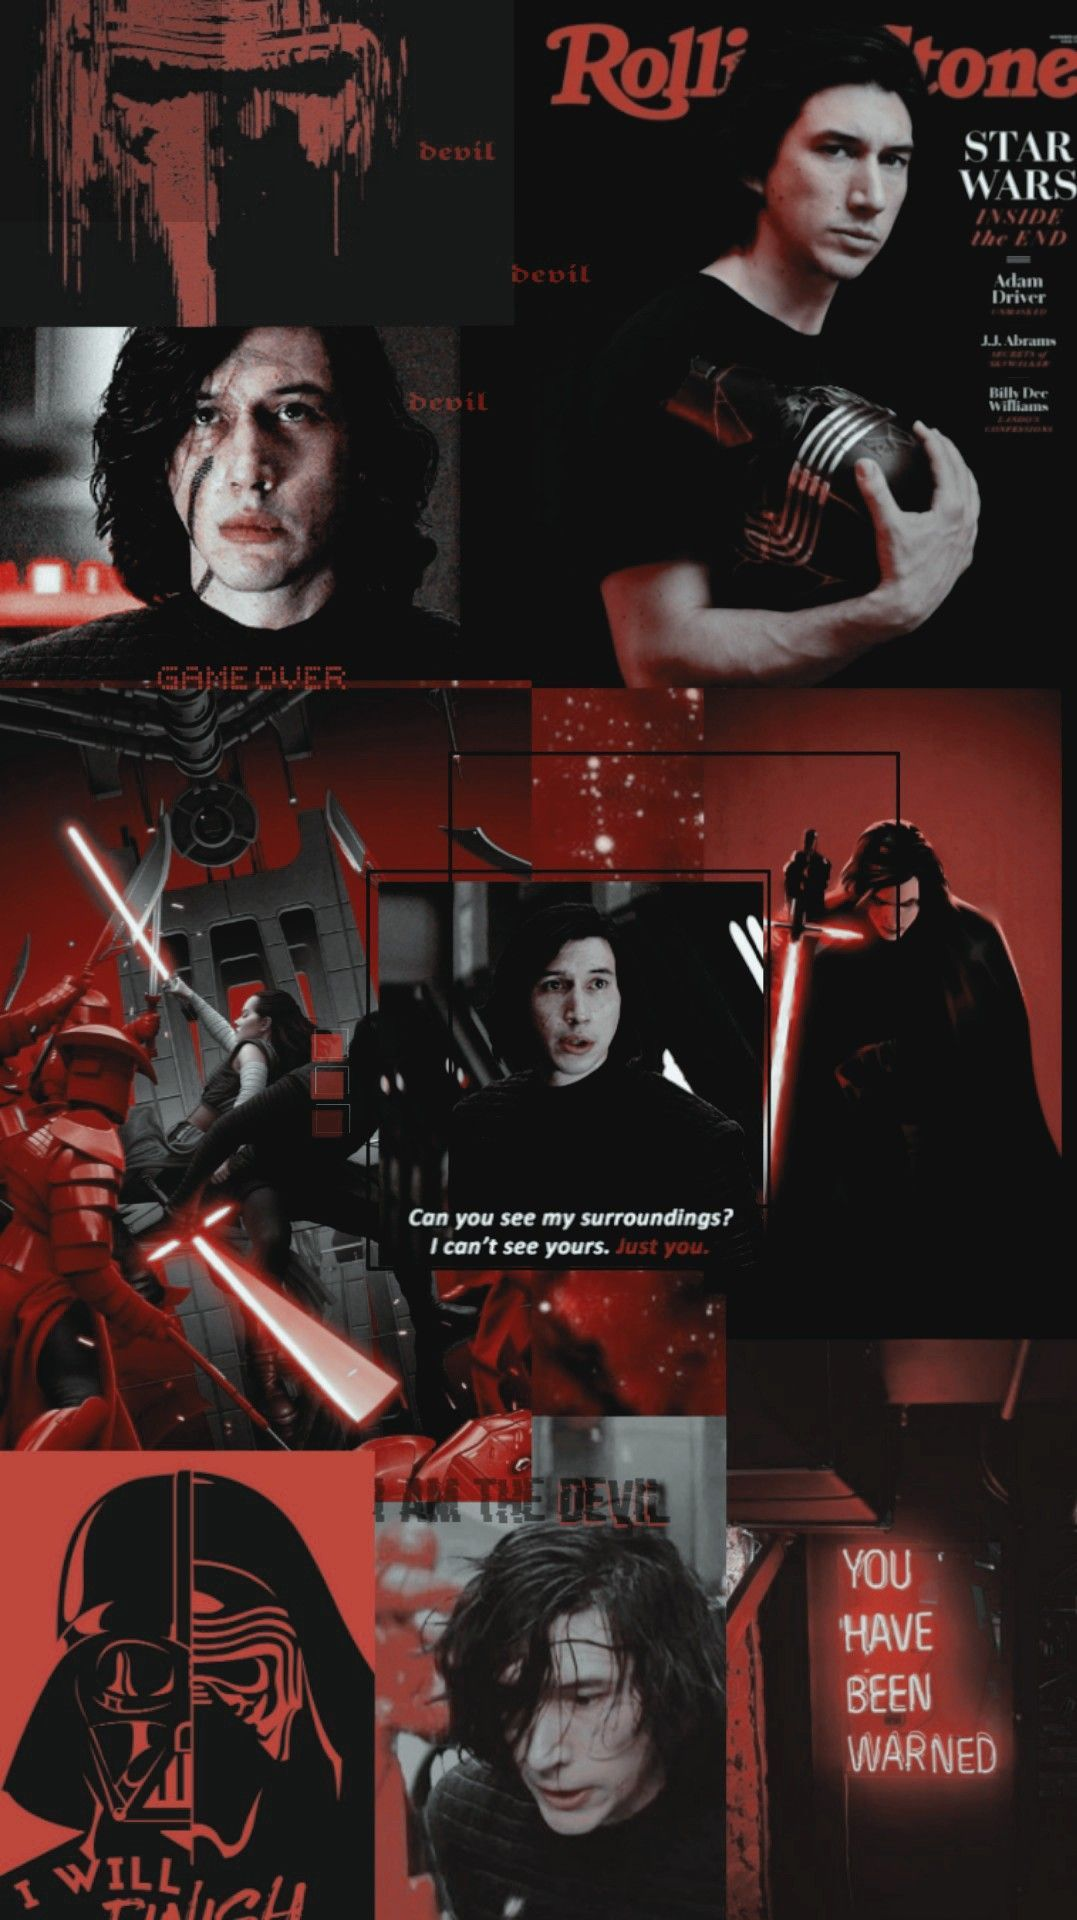 Kylo Ren Wallpaper Star Wars Poster Ideas Of Star Wars Poster Starwars Posters Starwarspos In 2020 Star Wars Wallpaper Star Wars Background Kylo Ren Wallpaper